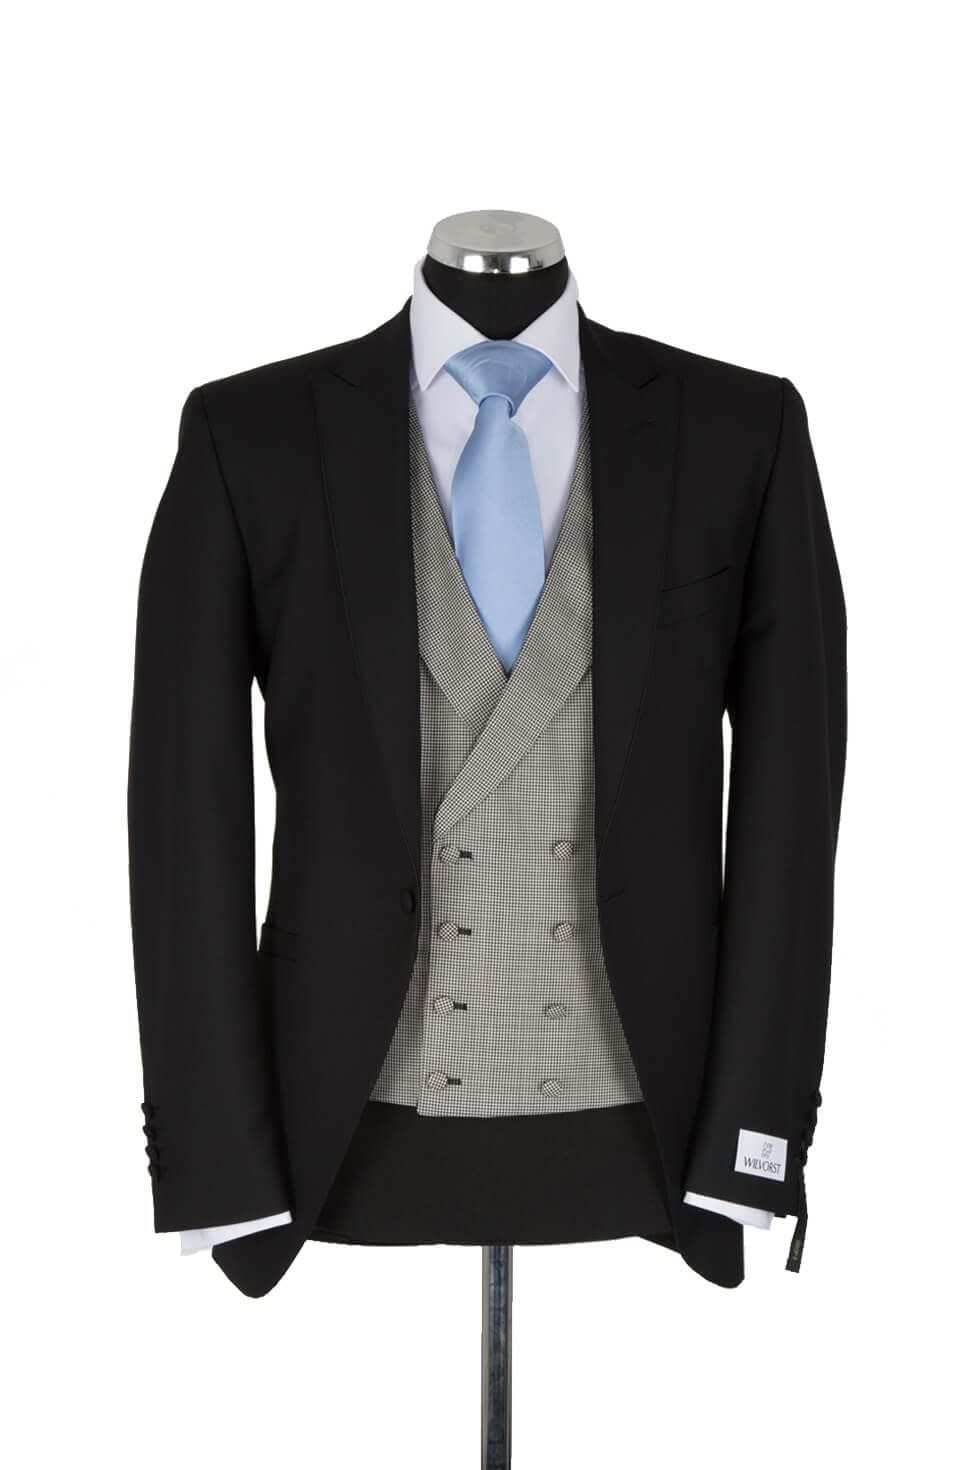 Wilvorst Black Lounge Suit